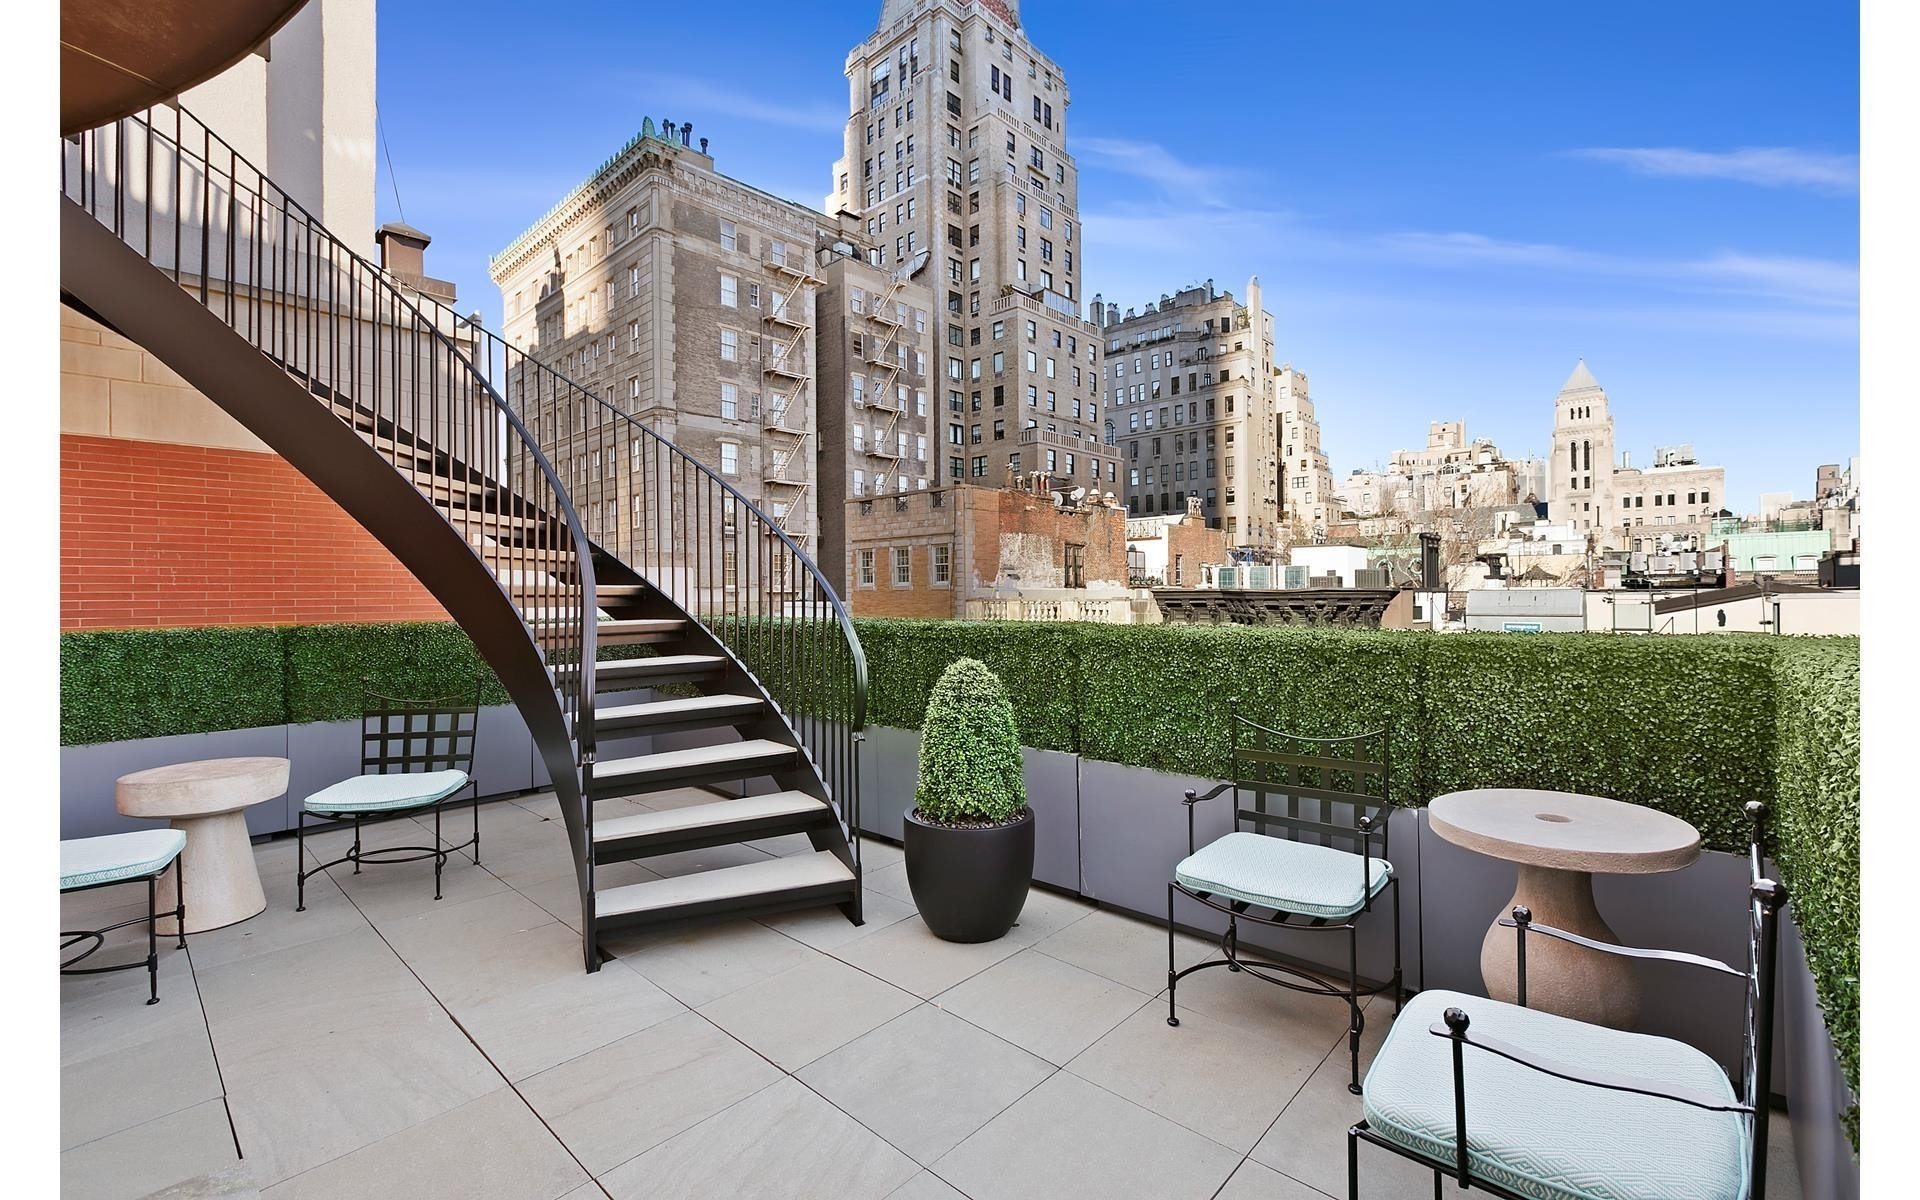 19. Single Family Townhouse for Sale at Lenox Hill, New York, NY 10021